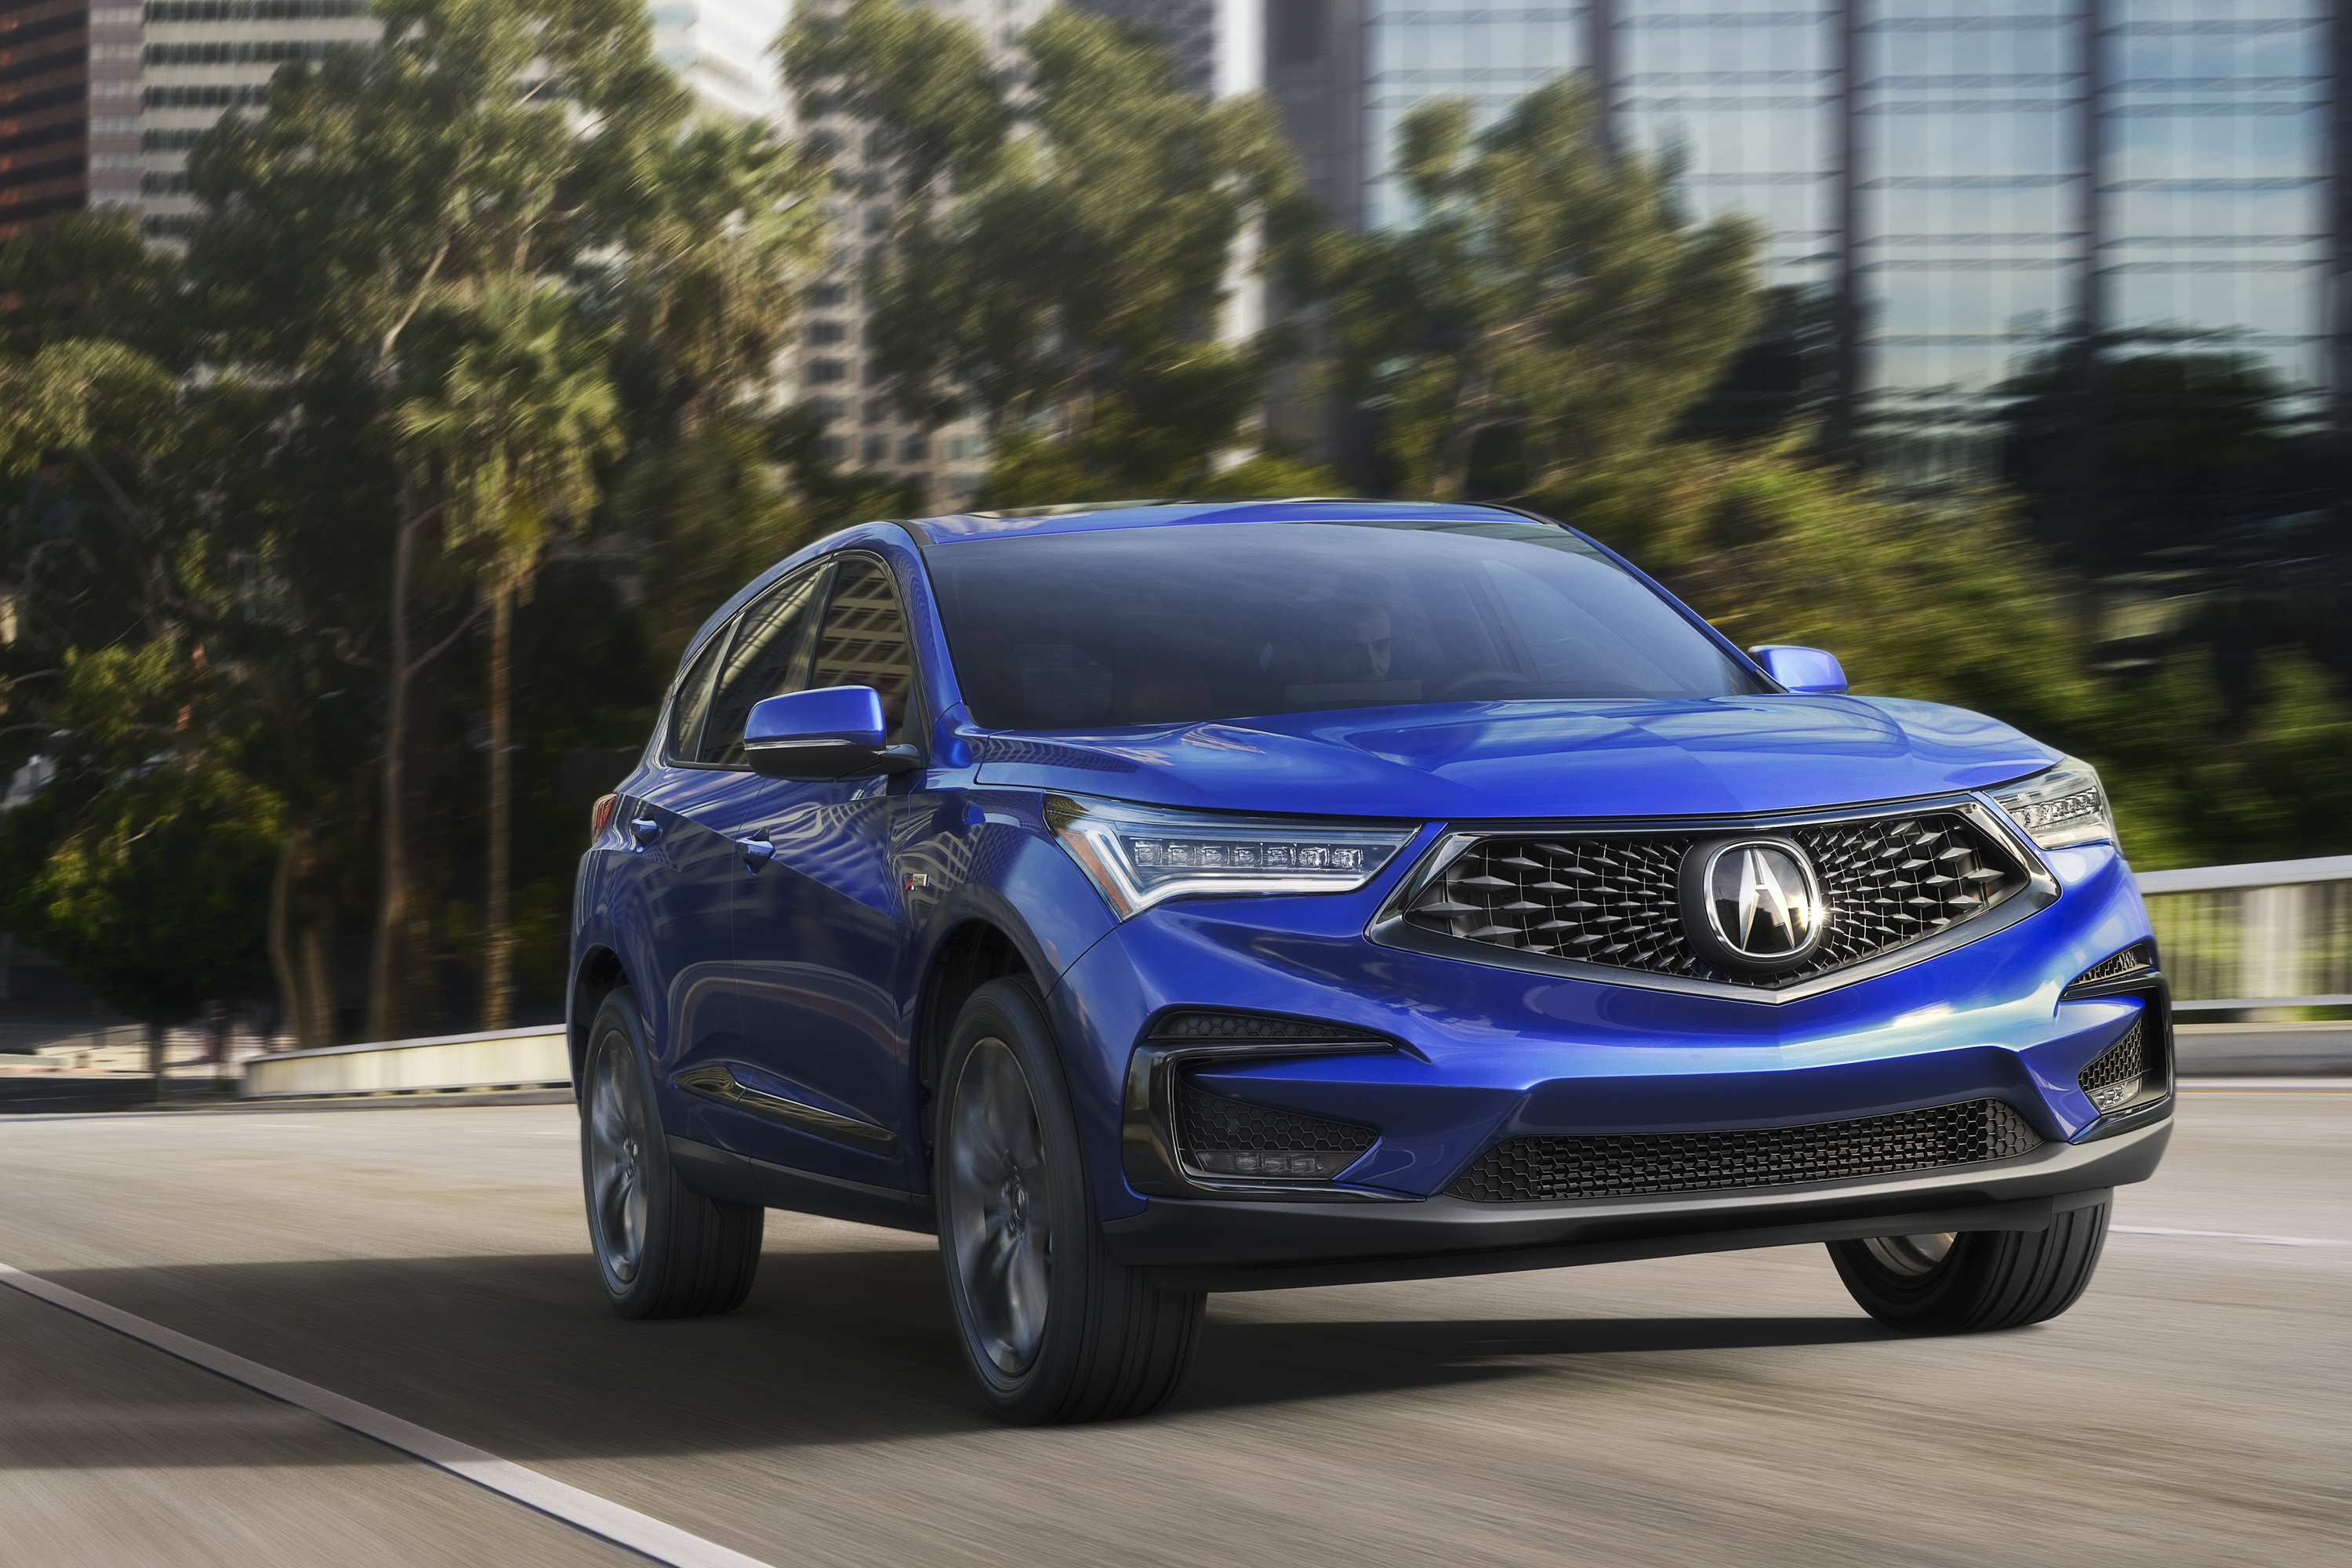 85 New Best Acura Rdx 2018 Vs 2019 New Release Exterior and Interior with Best Acura Rdx 2018 Vs 2019 New Release